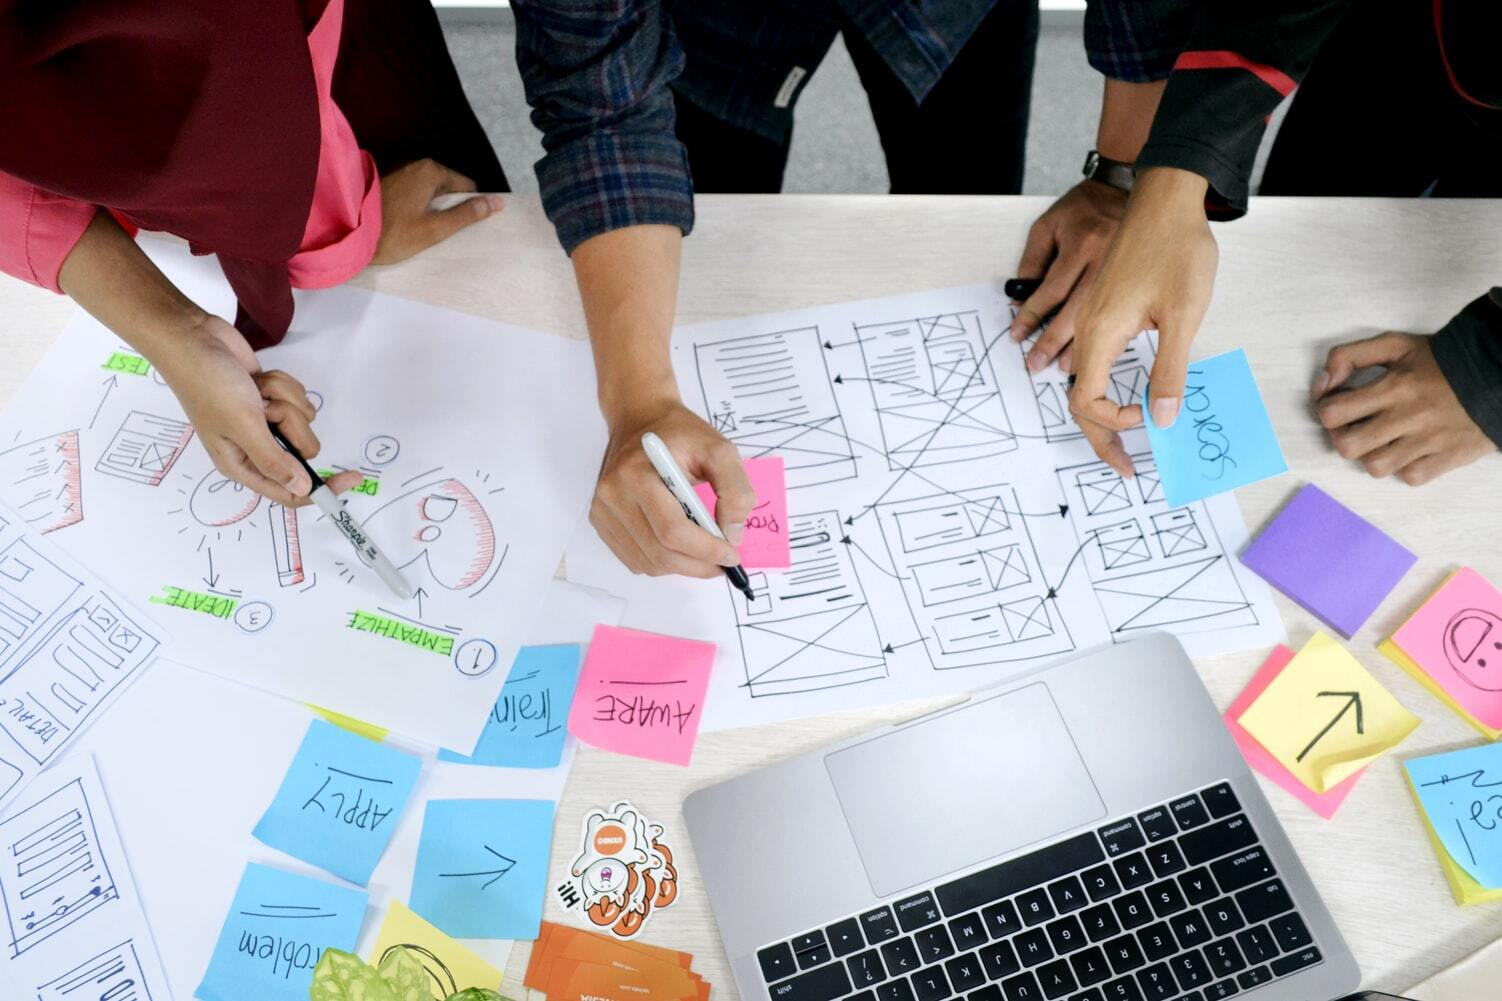 A team of designers and developers working on a user experience tasks.